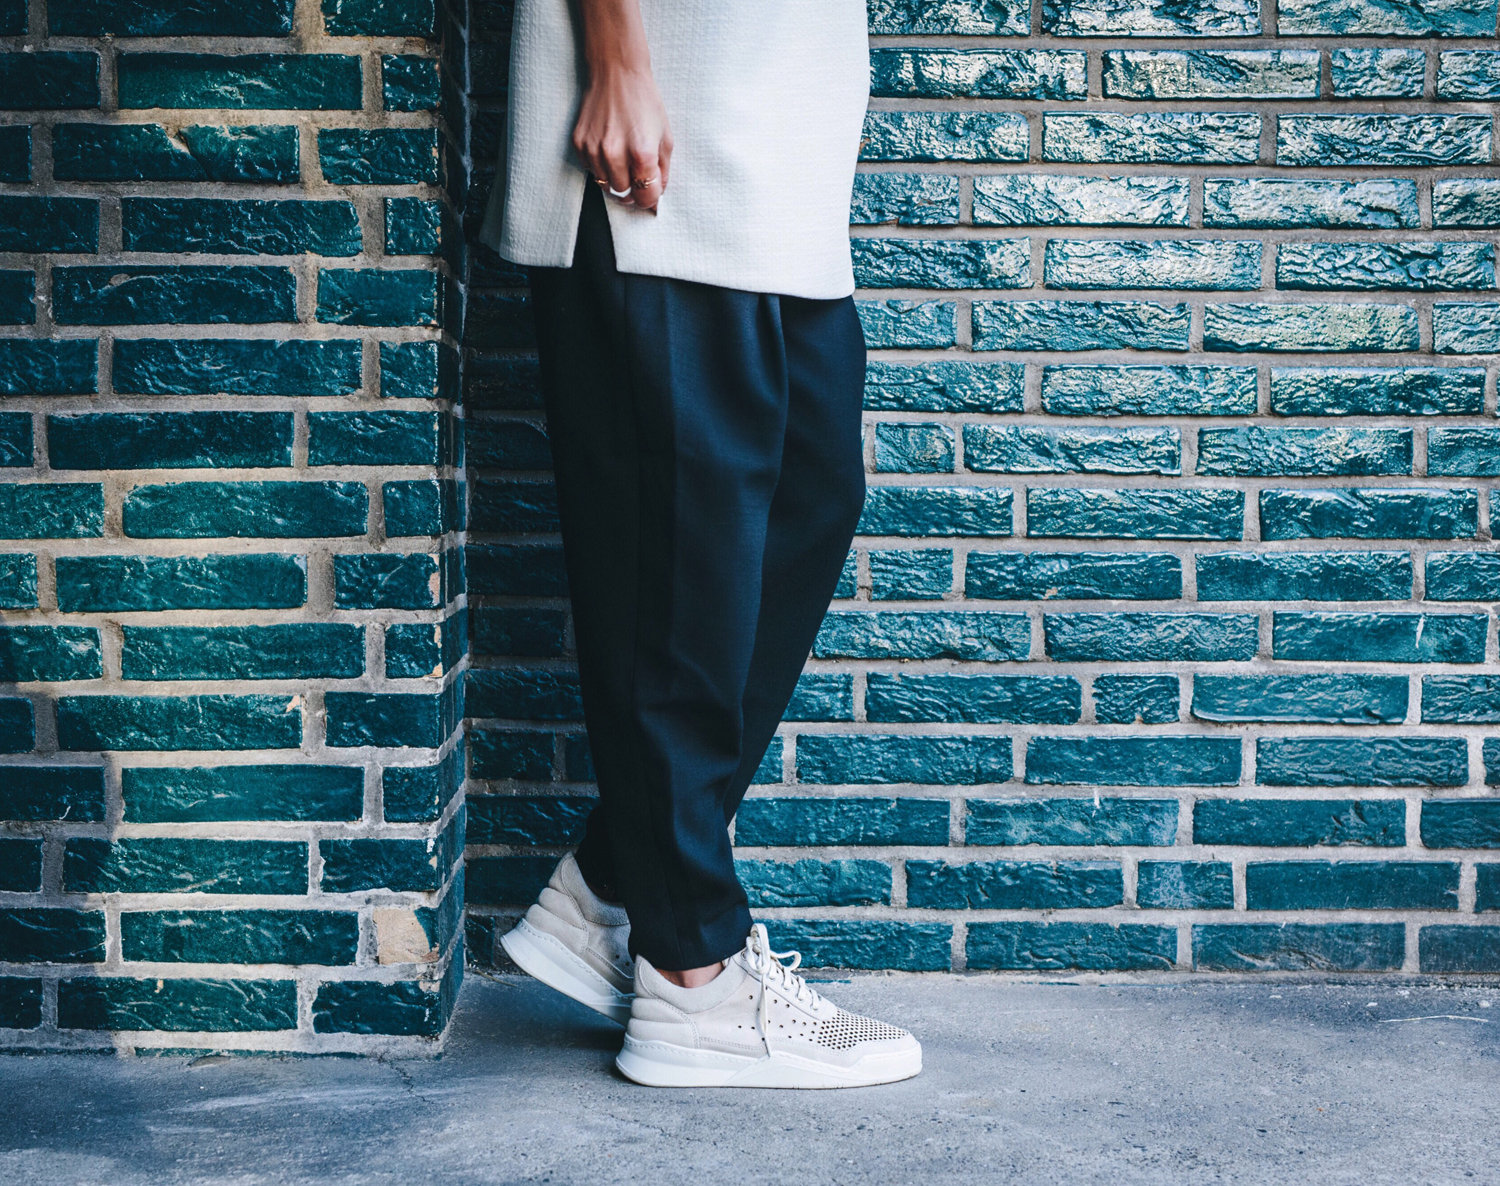 Ays_Yuva_Oversized_V-Neck_FillingPieces_Sneakers_07